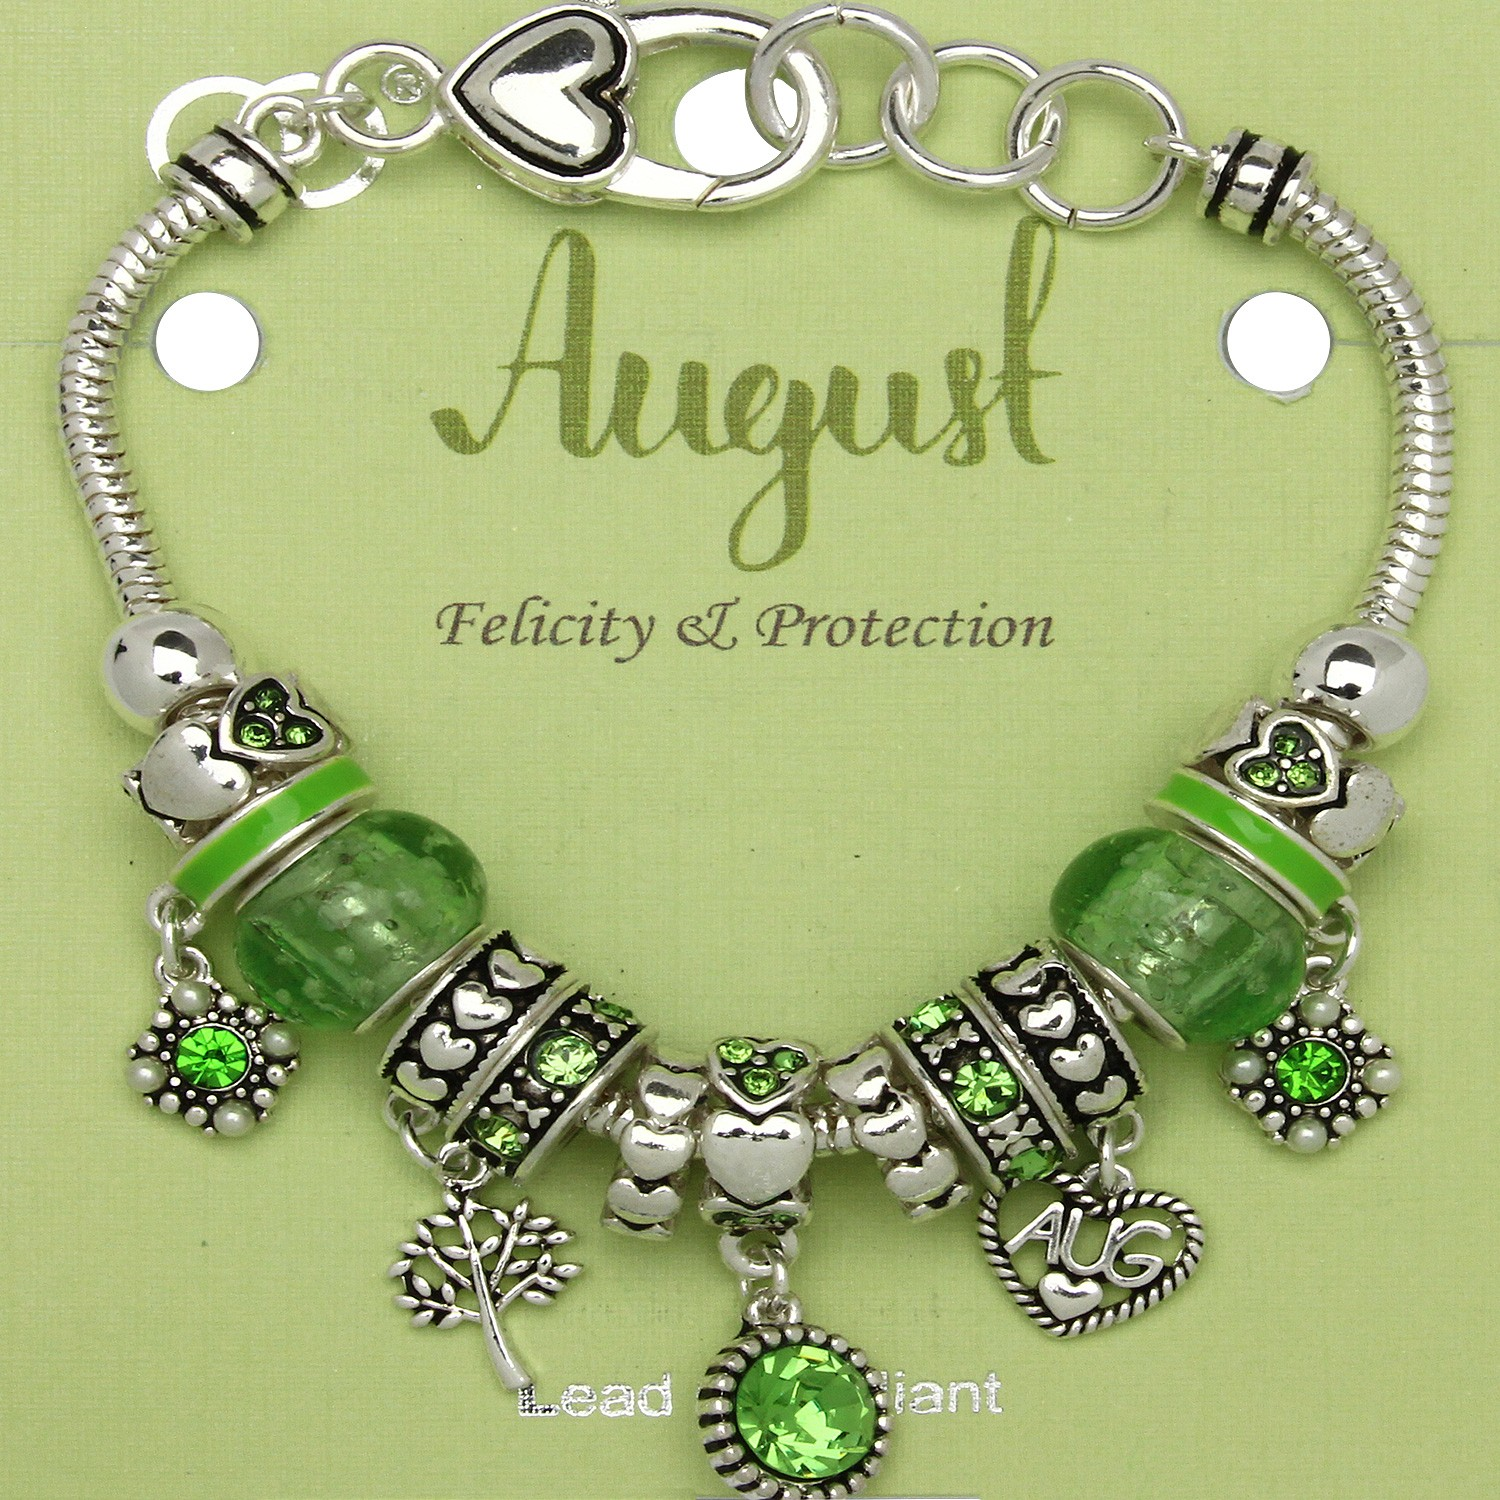 Peridot August Birthstone Charm Bracelet Murano Beads Pandora Style Inspired Felicity Protection